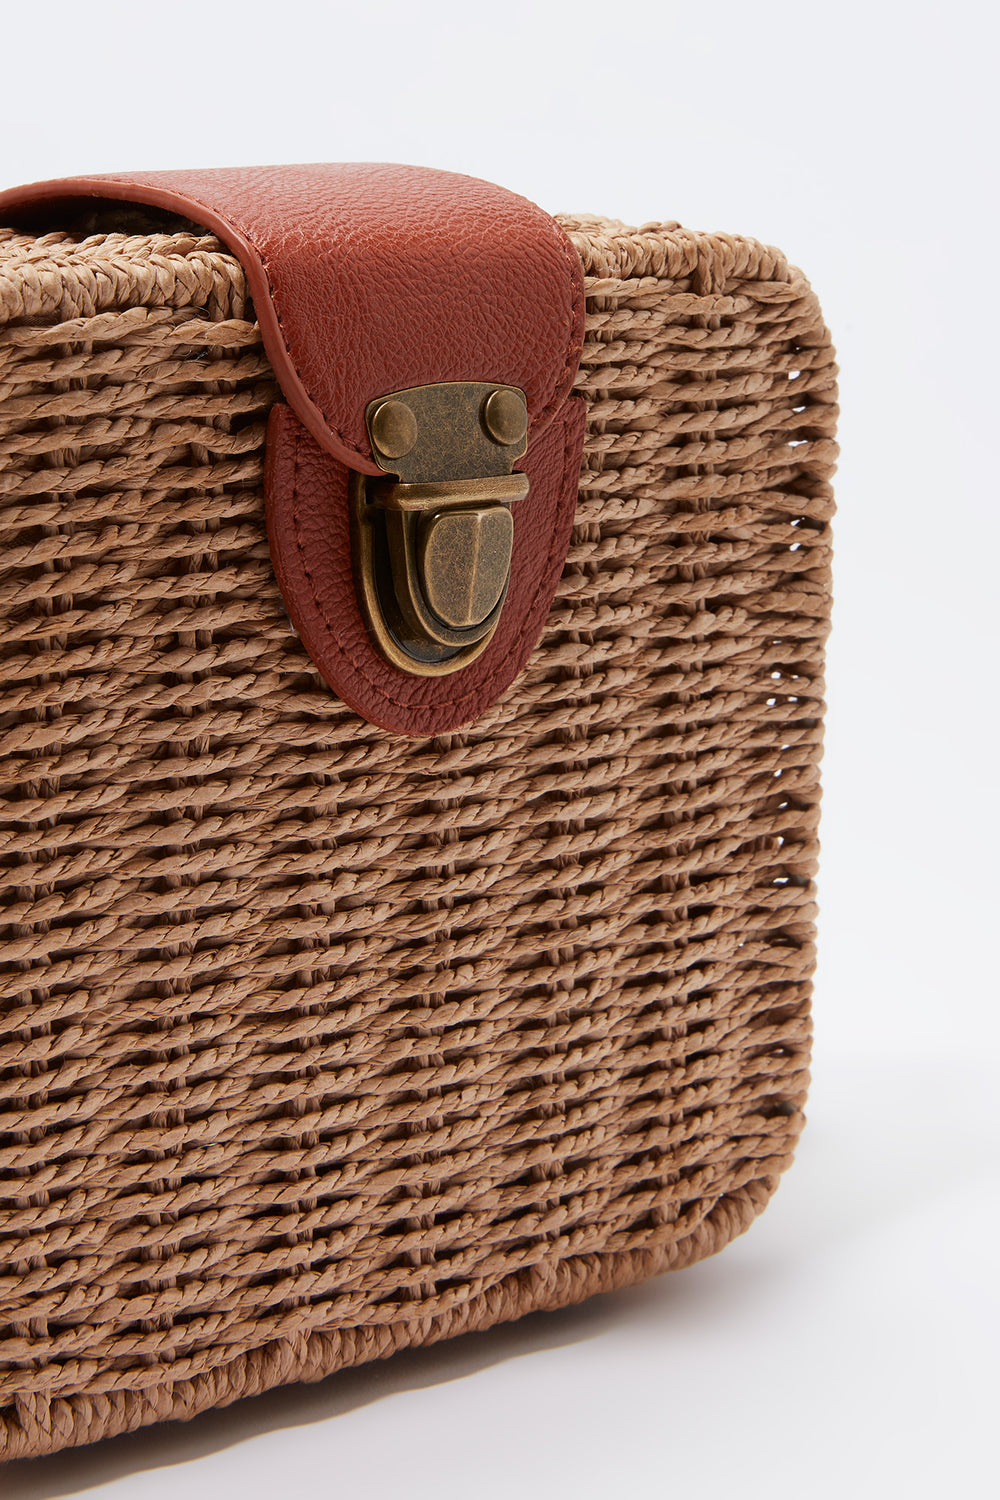 Sac en osier Naturel